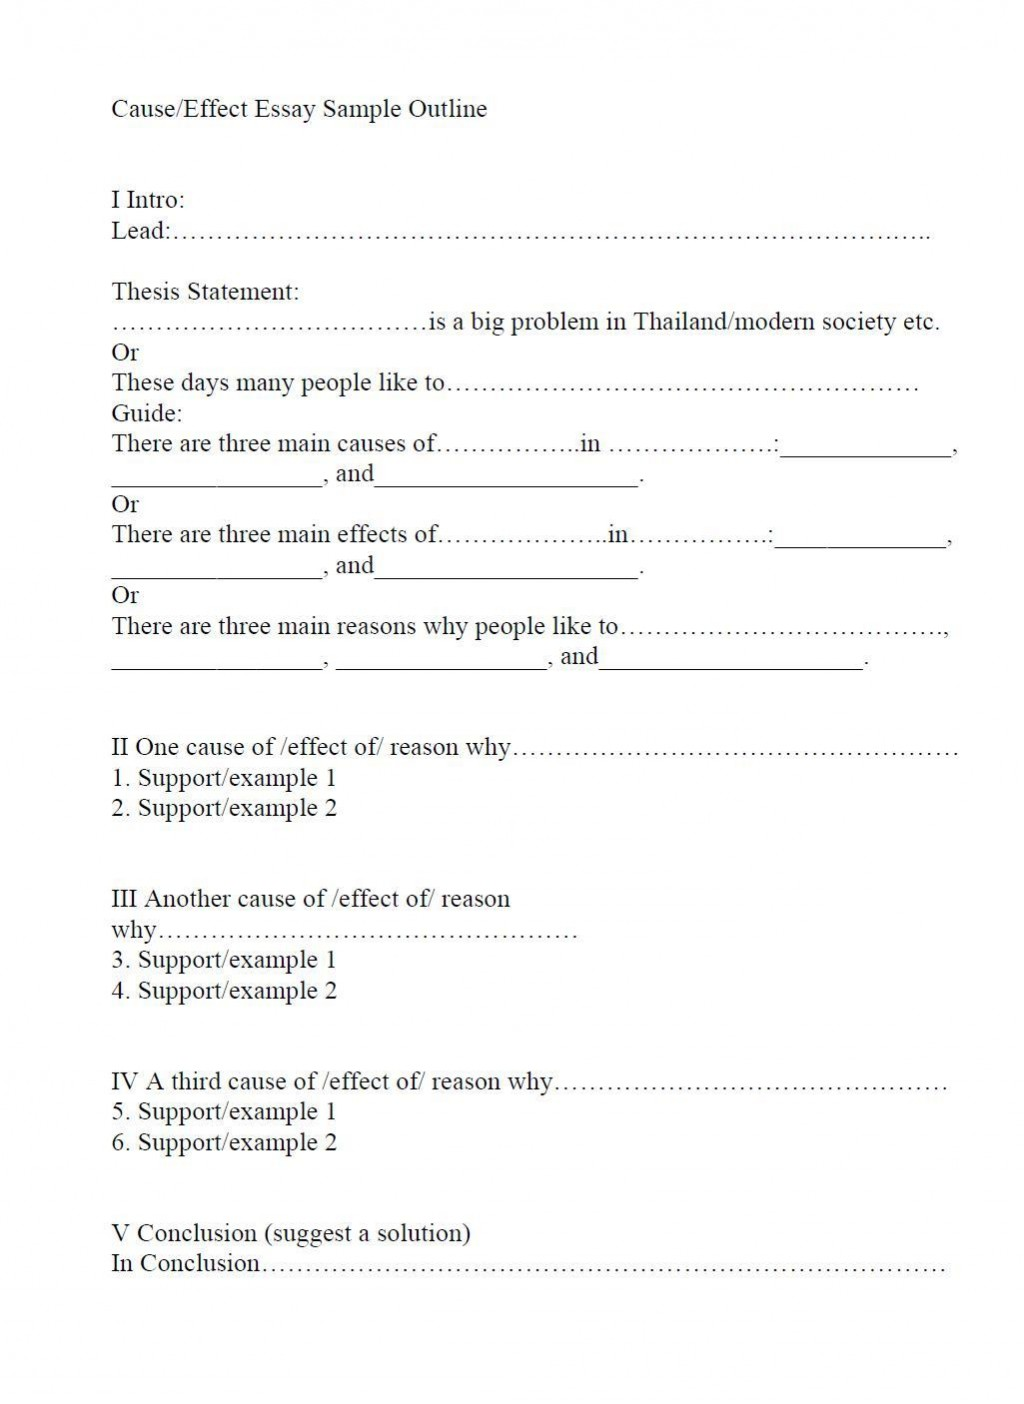 005 Opinion Essay Outline Format Toulmin Striking Method Large